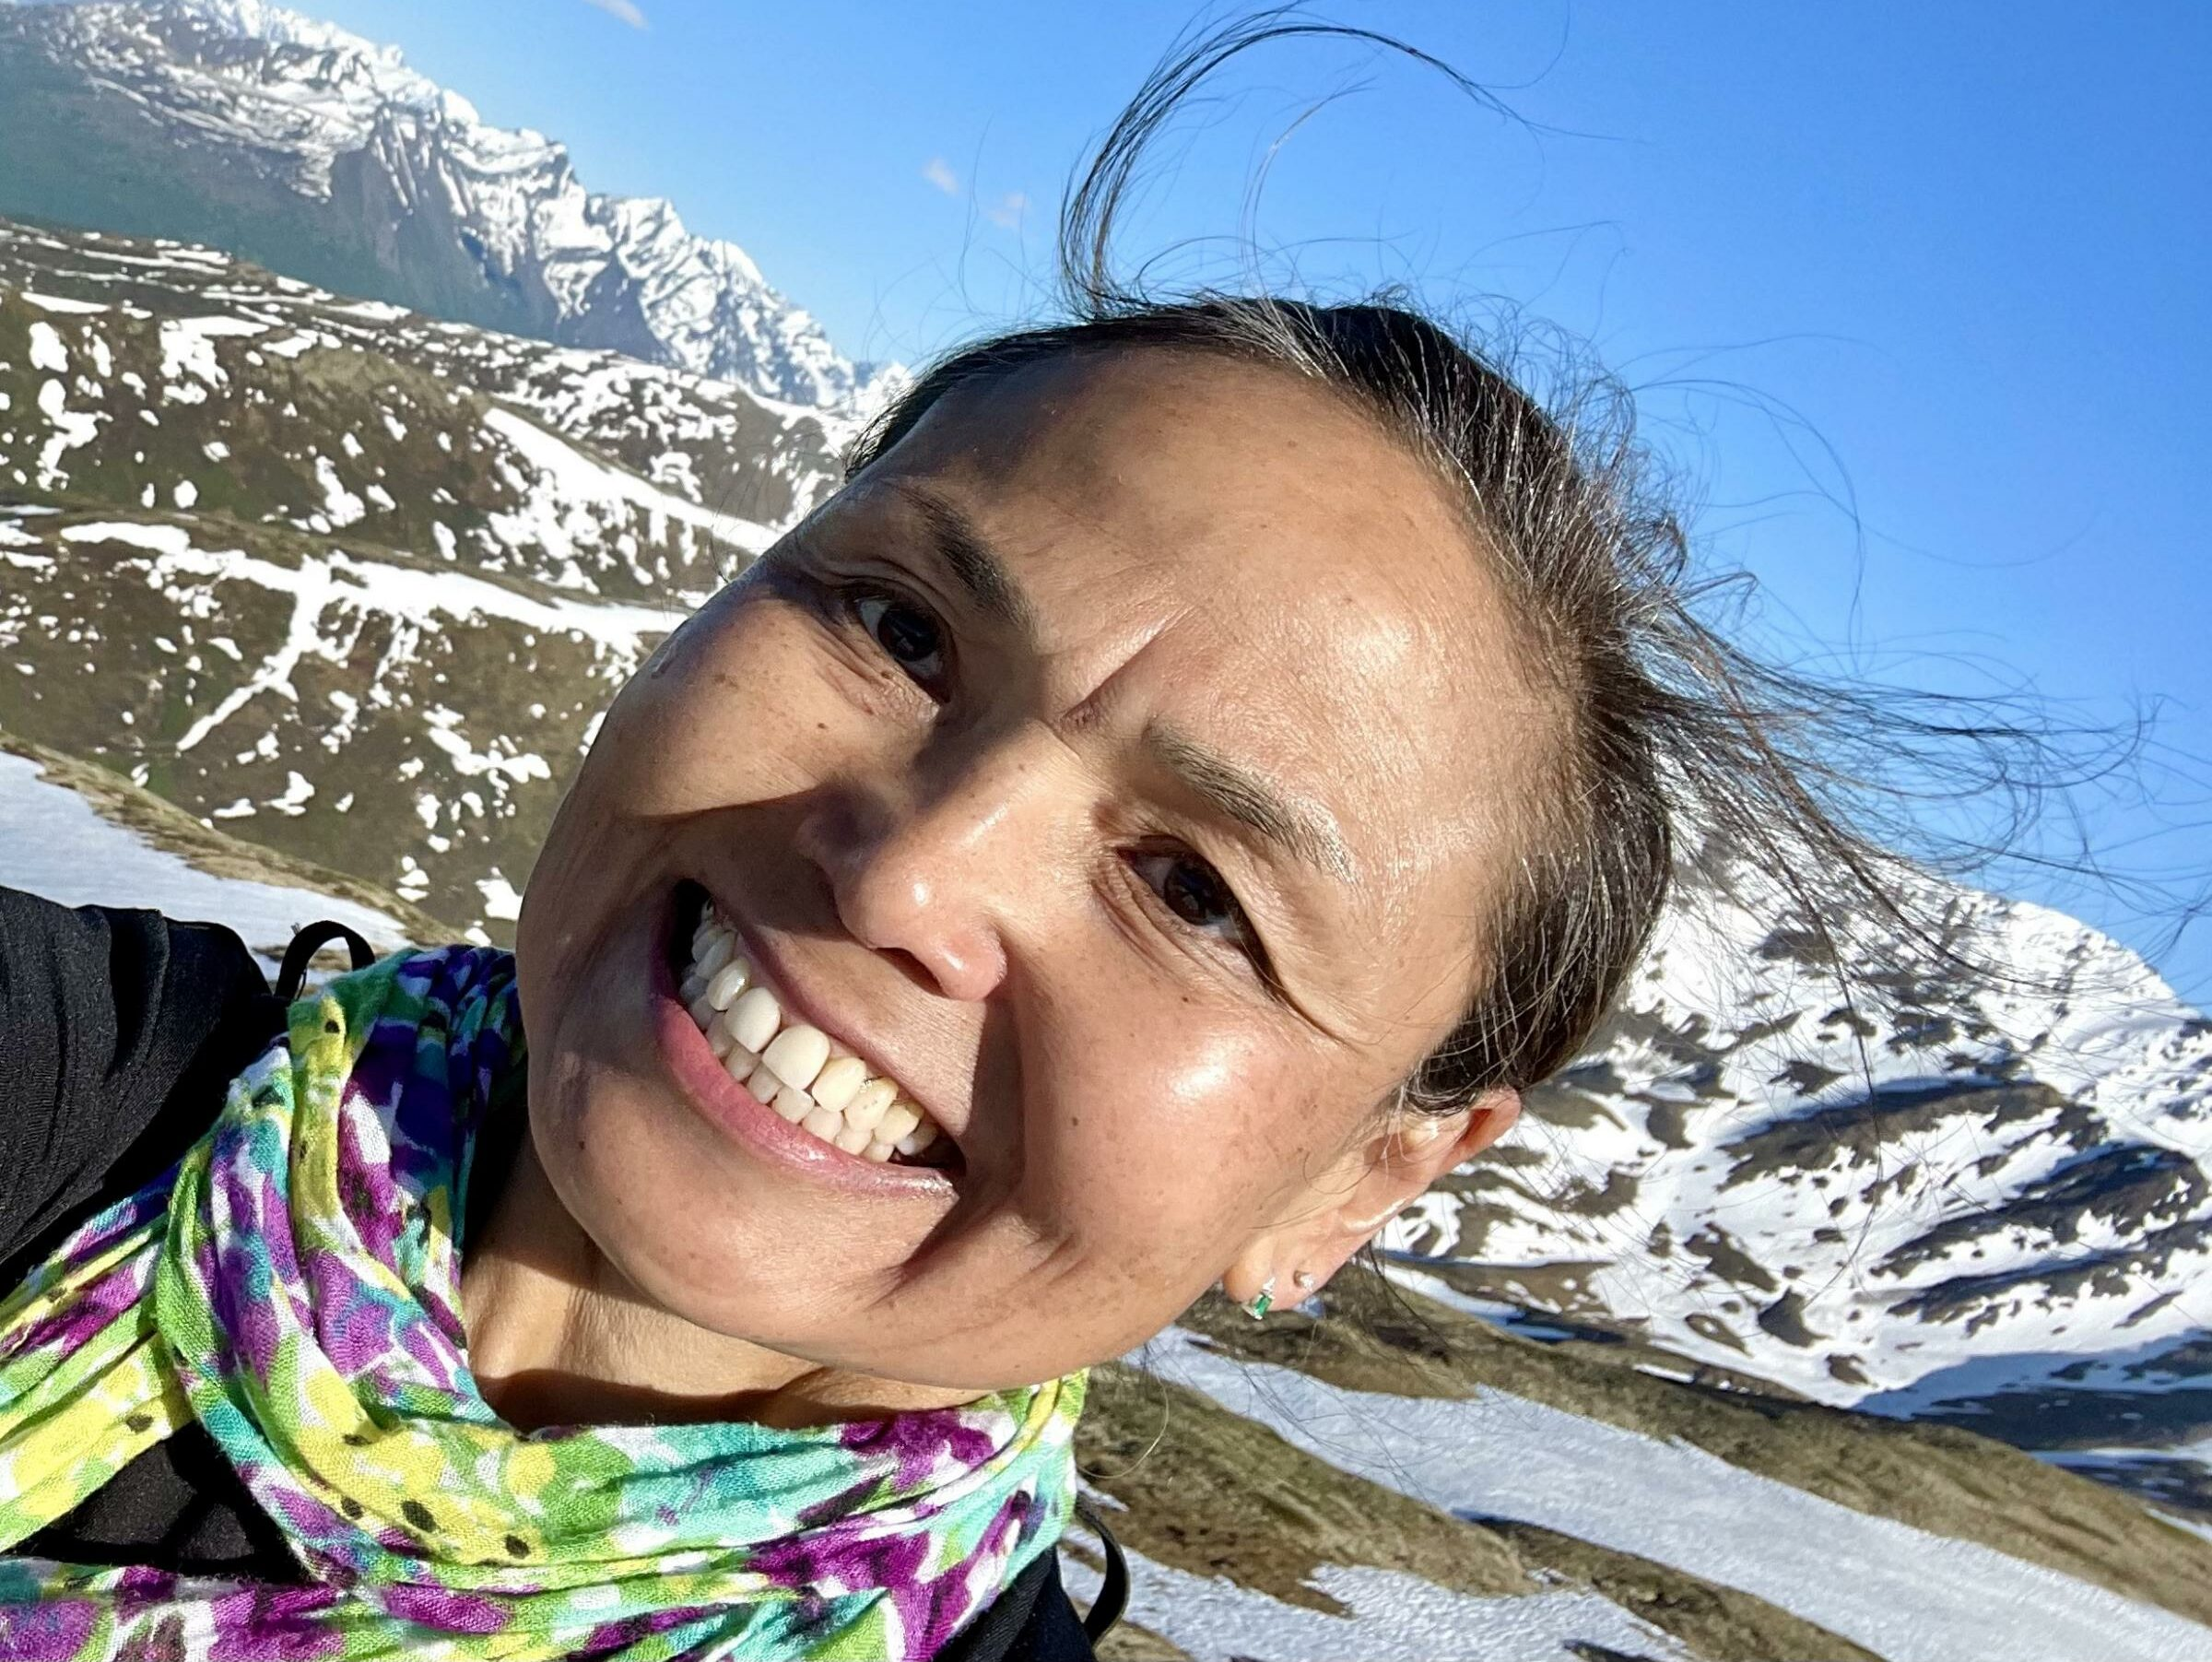 A woman smiles into a camera for a selfie in front of some snowy mountains